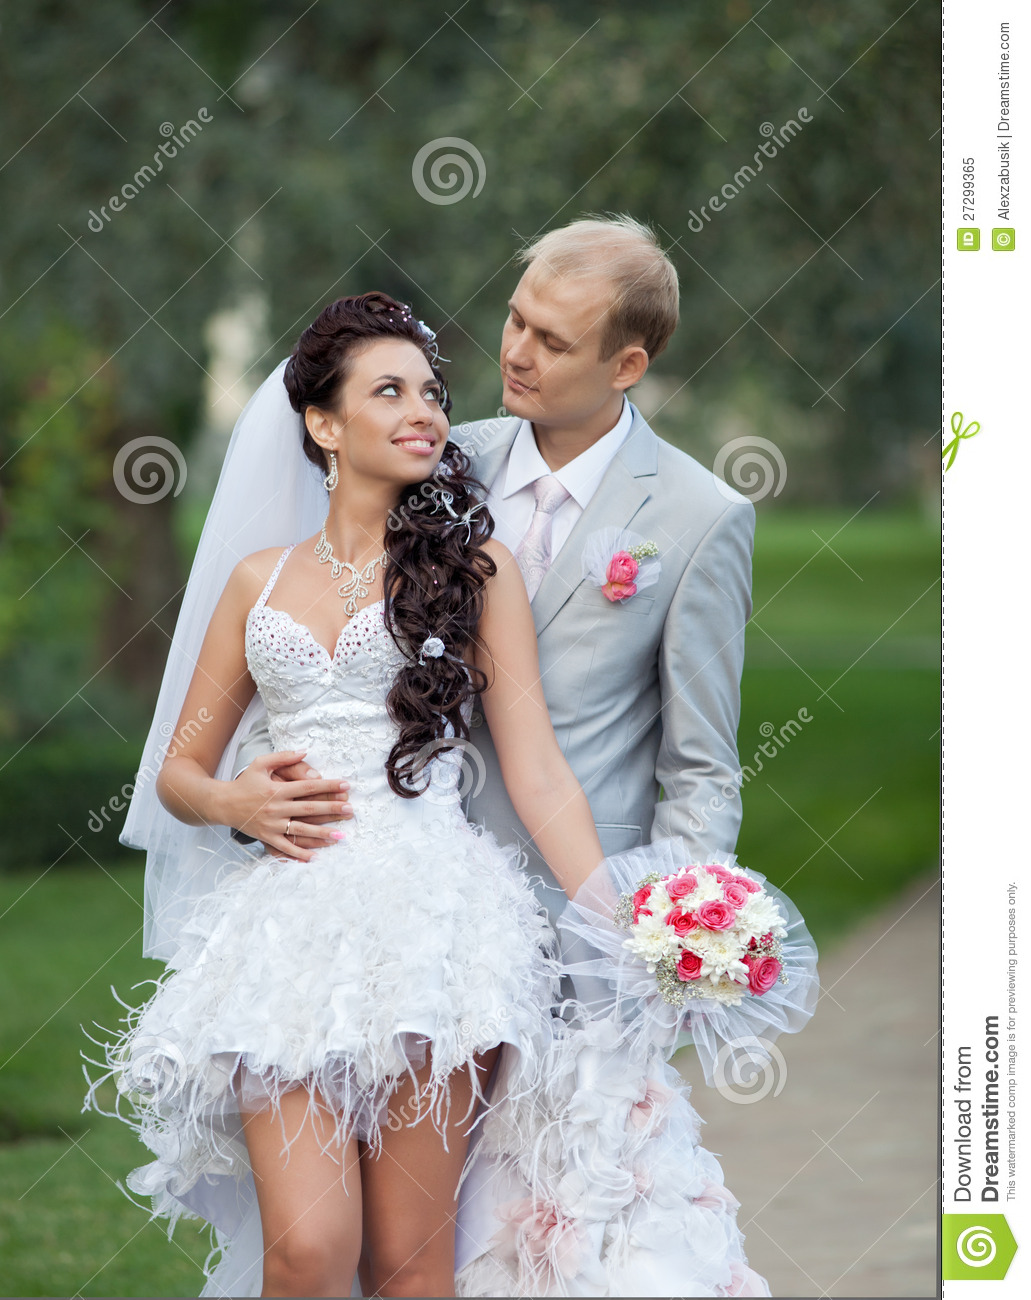 Image result for pictures of wedded couples